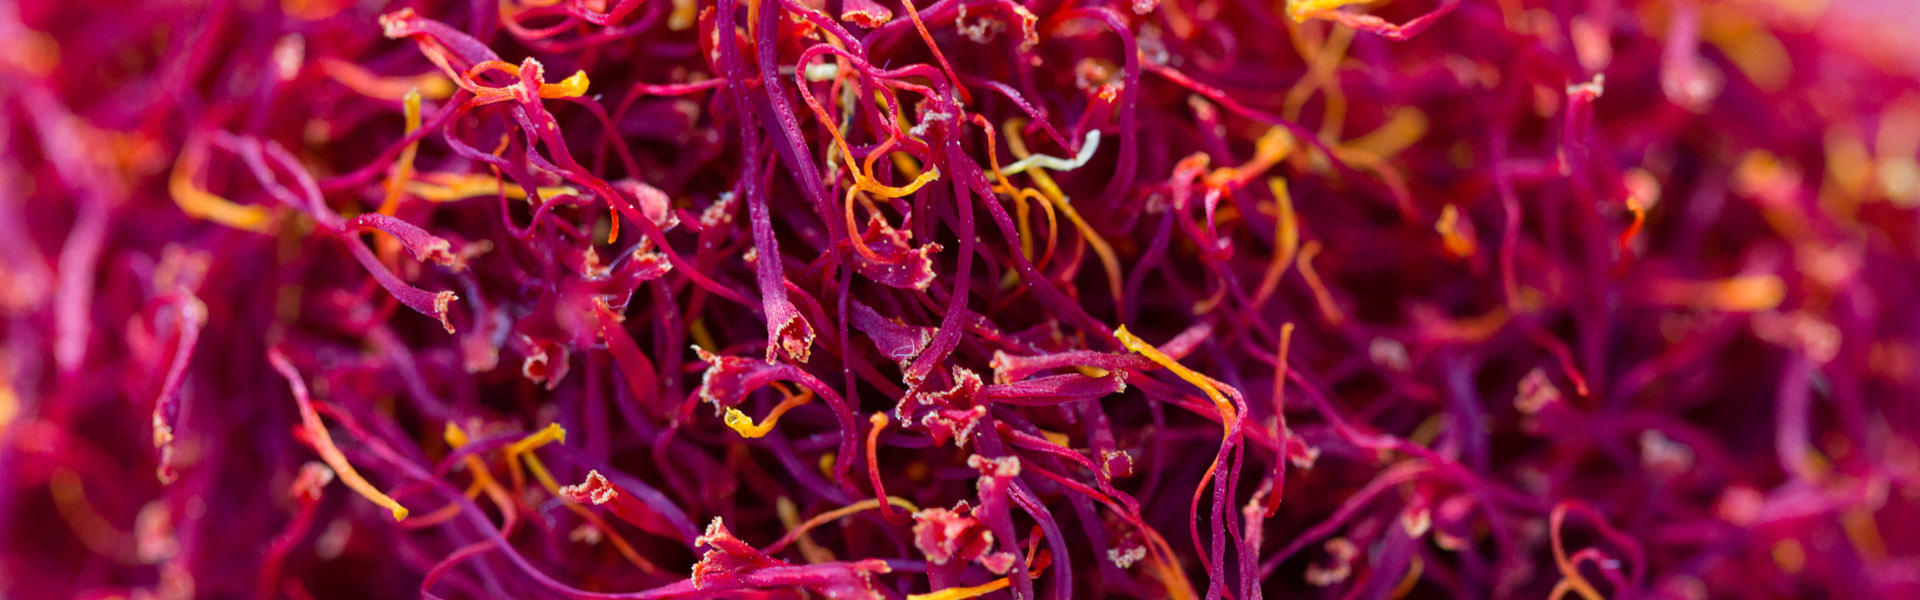 Saffron threads, credit Greg Elms and North East Tourism